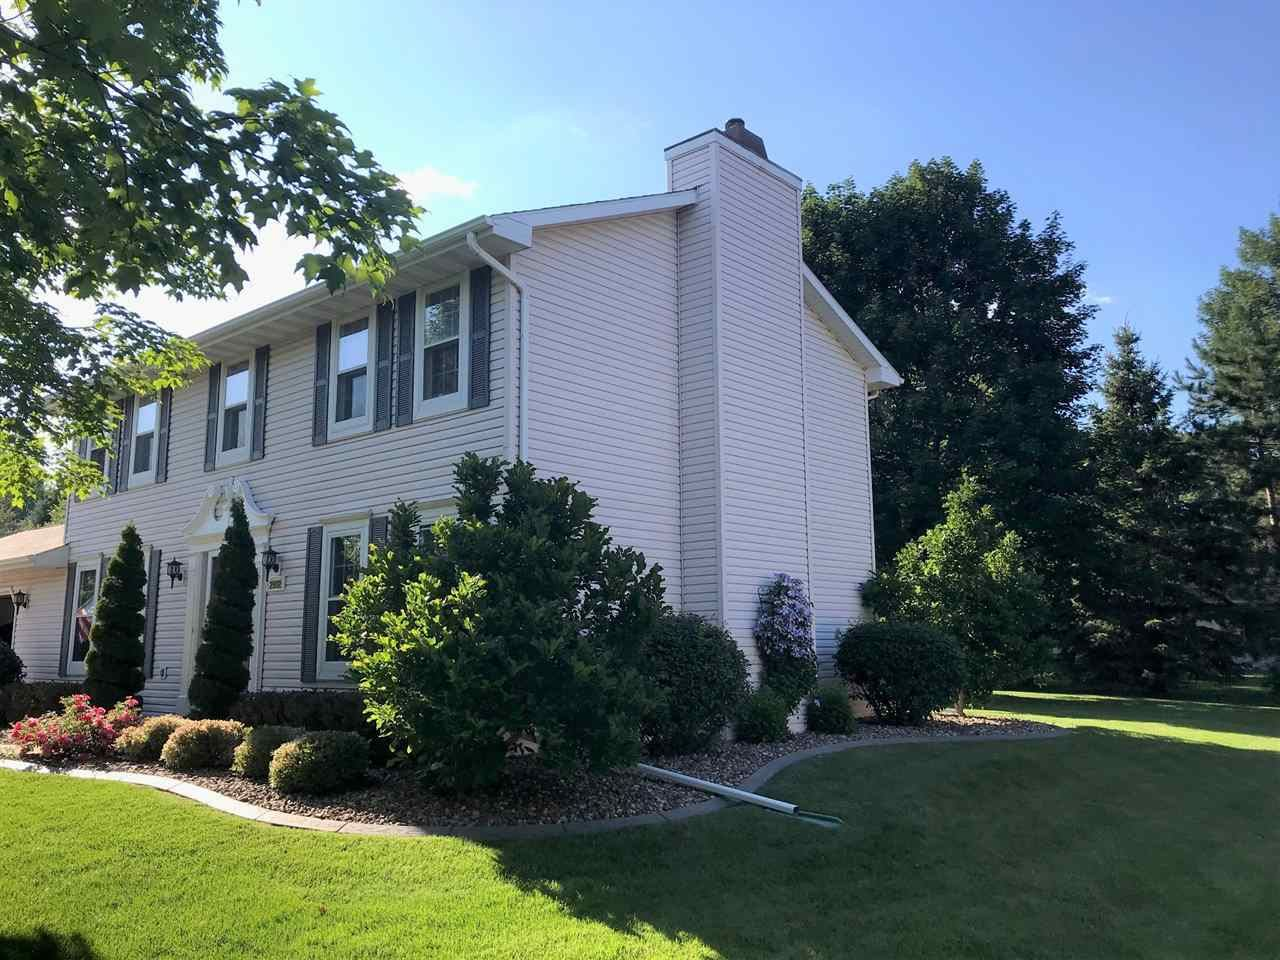 2092 ELVIRA Way, Green Bay, WI 54313 - MLS#: 50225671